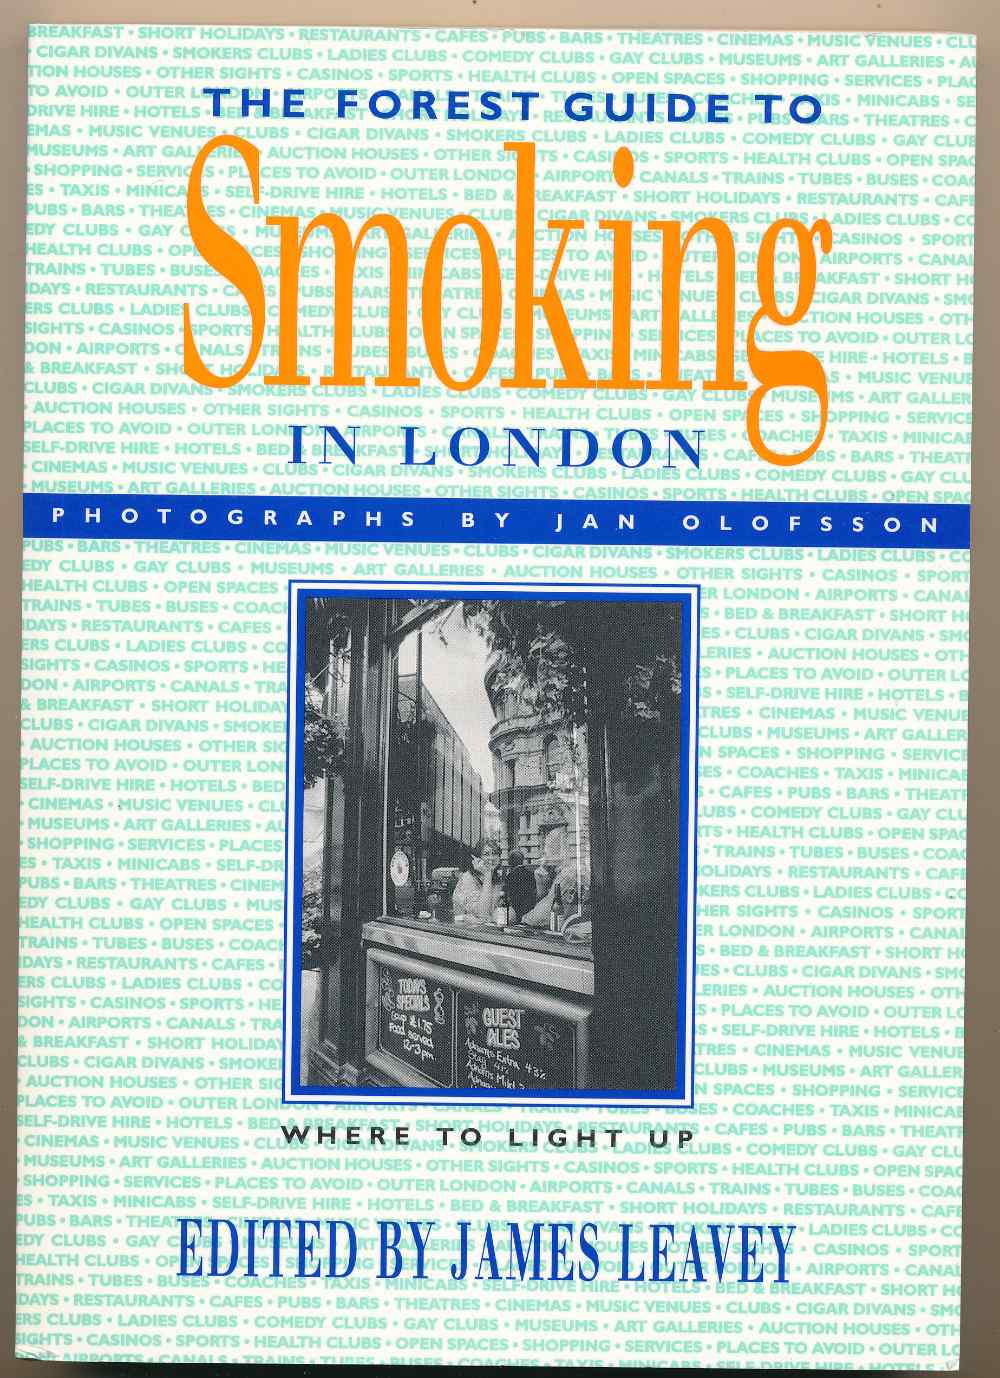 The Forest guide to smoking in London